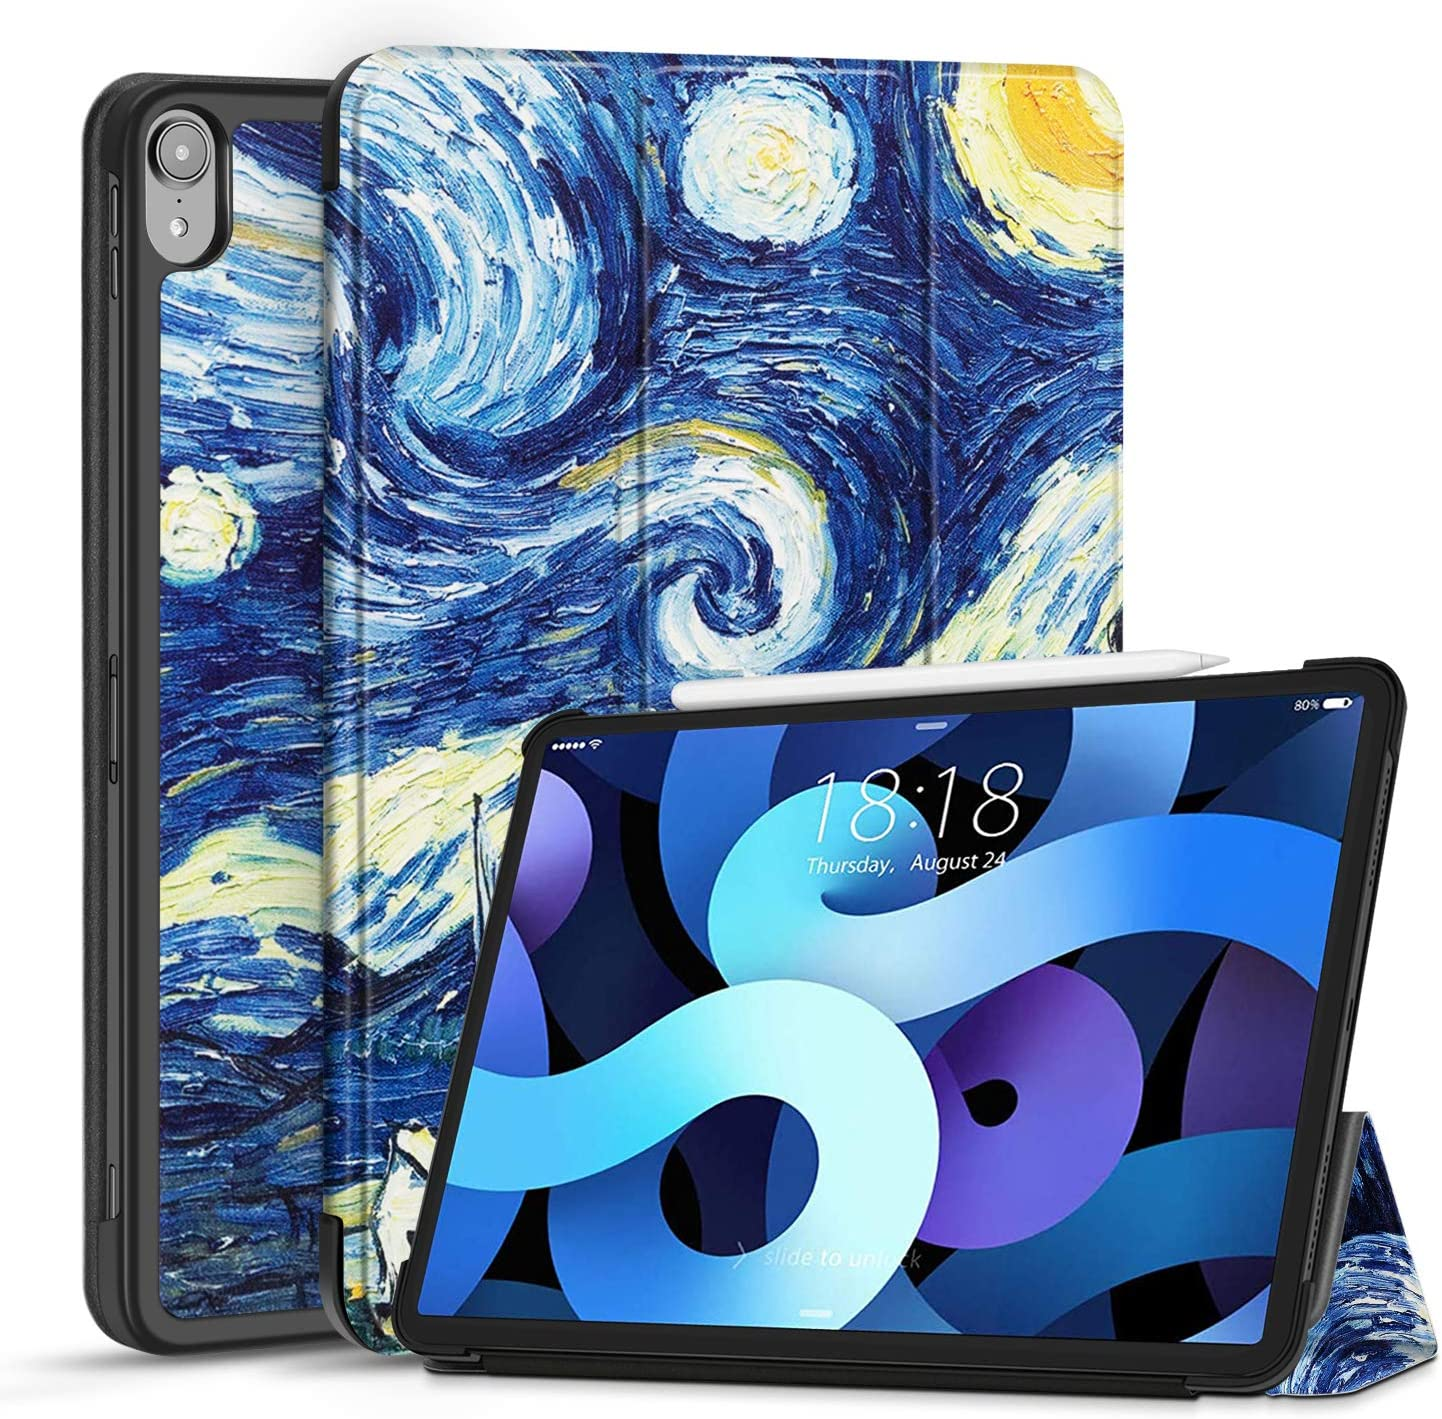 TNP Case for iPad Air 4 / 4th Generation 2020 Protective Cover 10.9 Inch Compatible with 2nd Gen Apple Pencil Charging - Trifold Stand Holder Slim Folio Sleeve Smart Auto Sleep Wake - Starry Night